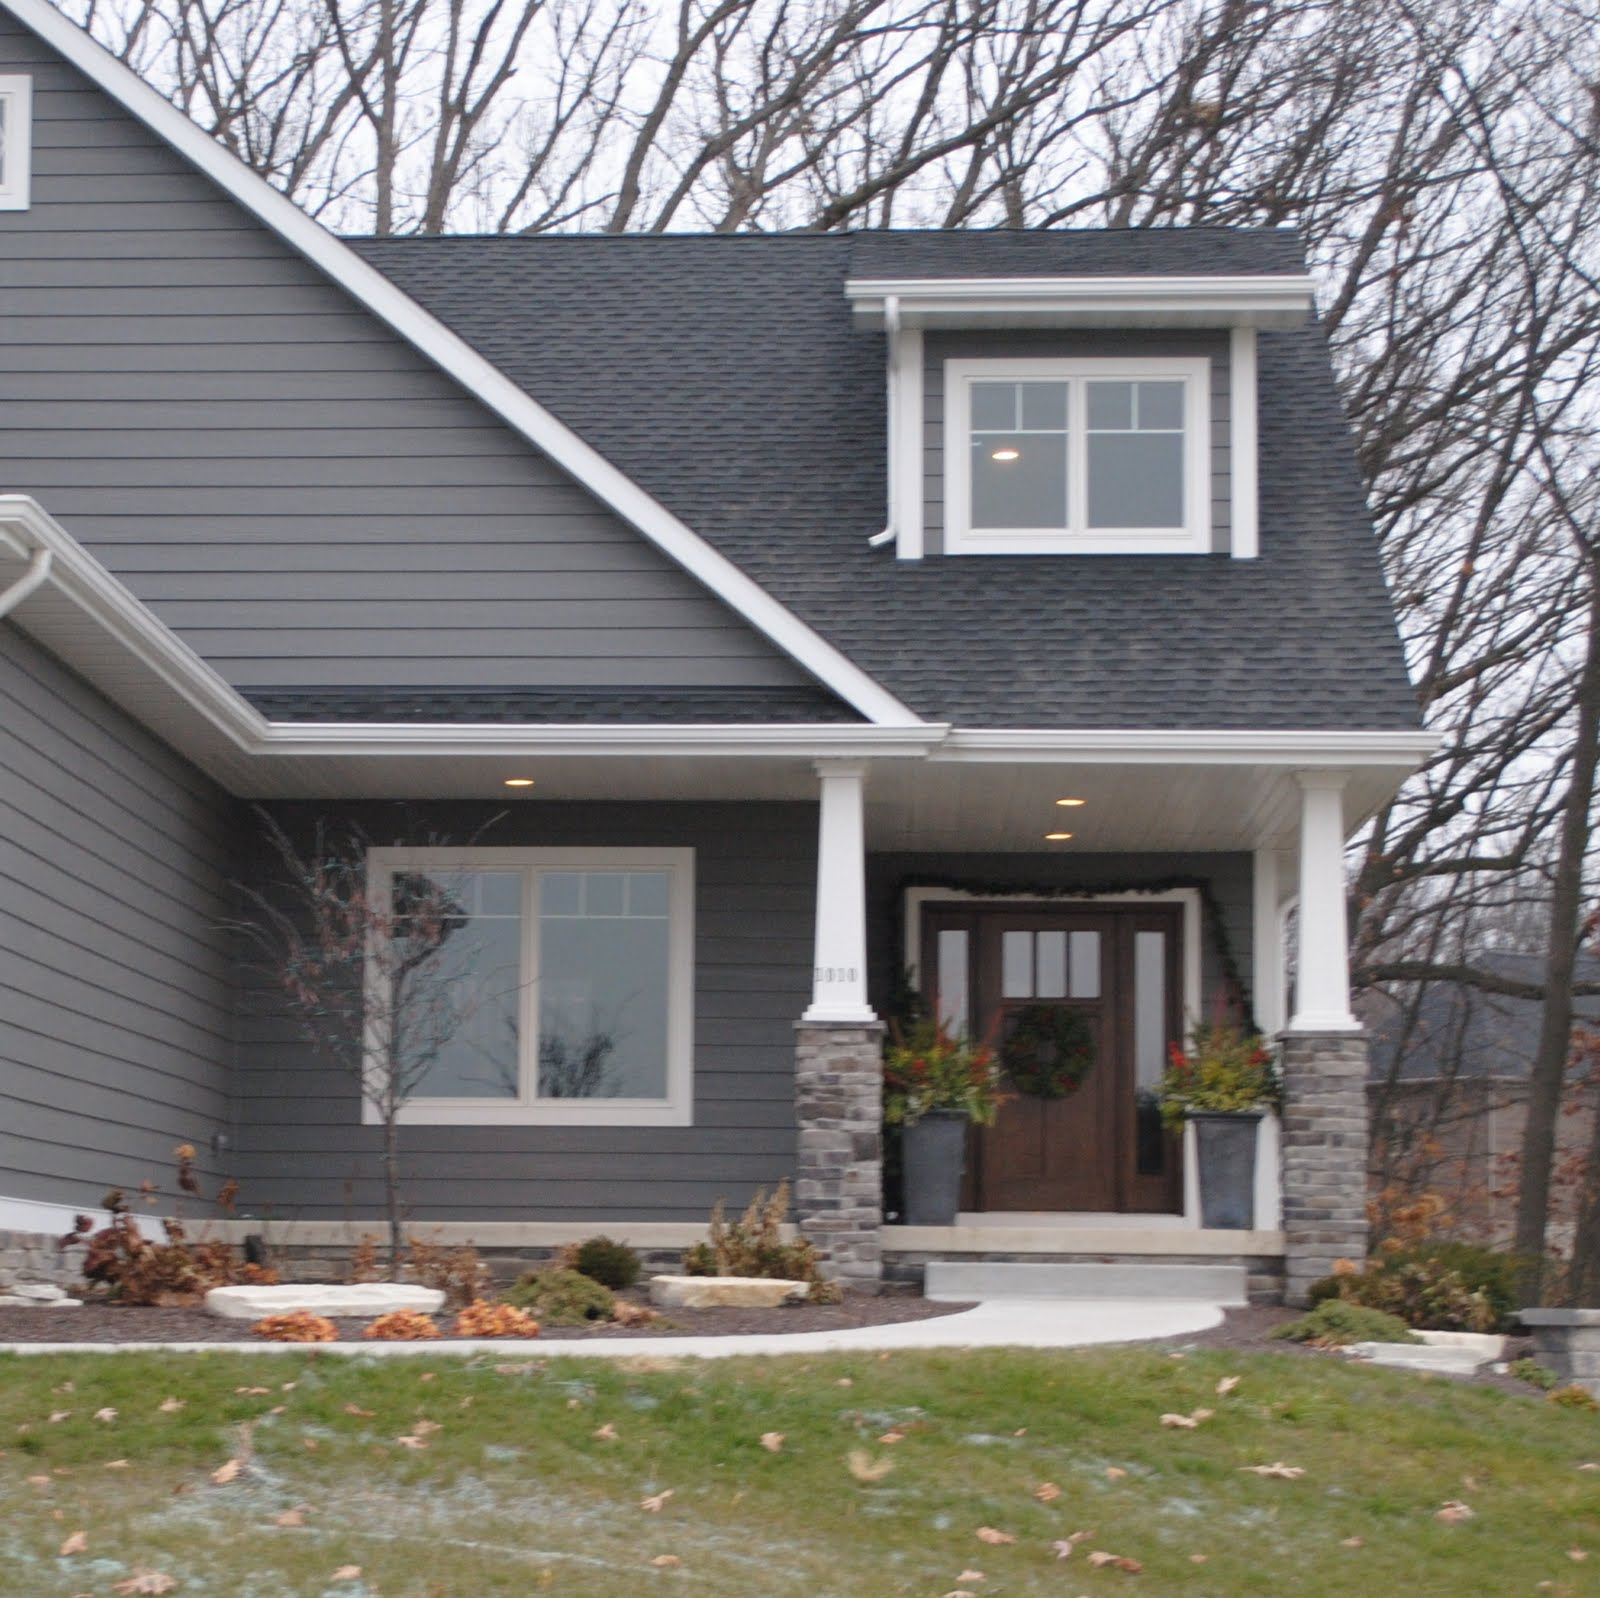 Cape coddin 39 in indiana stone brick or both for Vinyl siding colors on houses